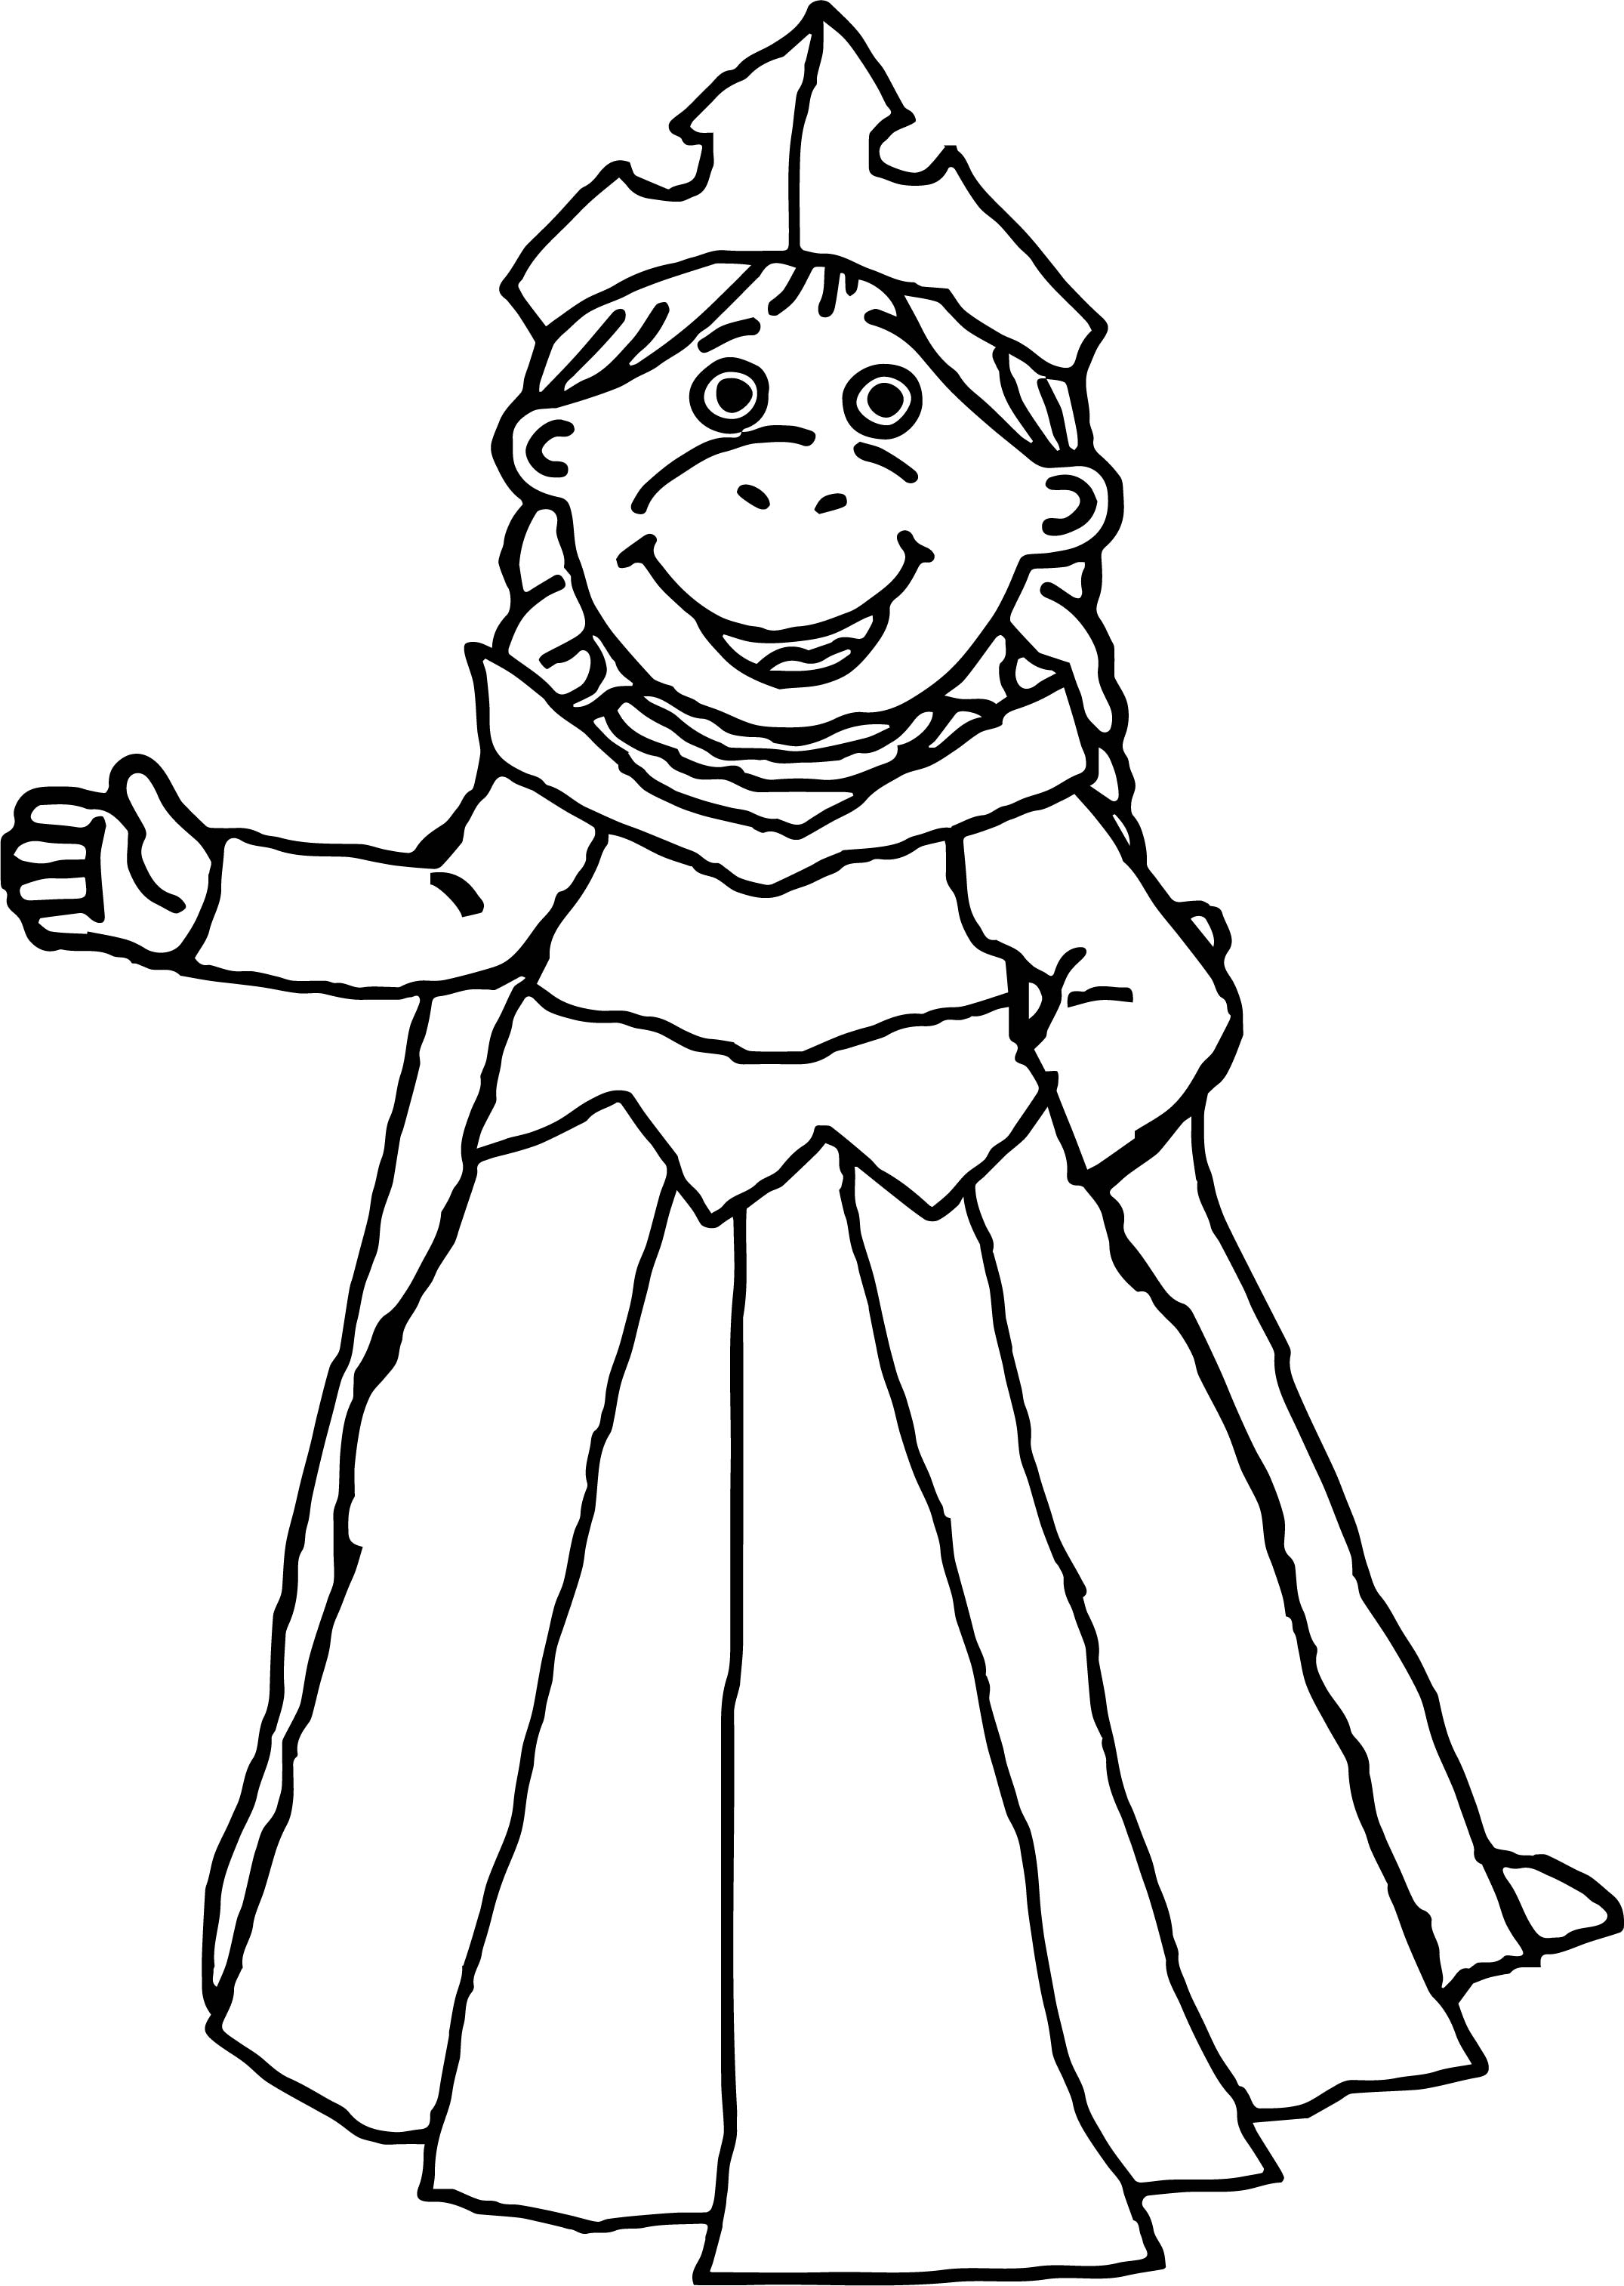 arthur coloring pages free - princess muffy arthur coloring page